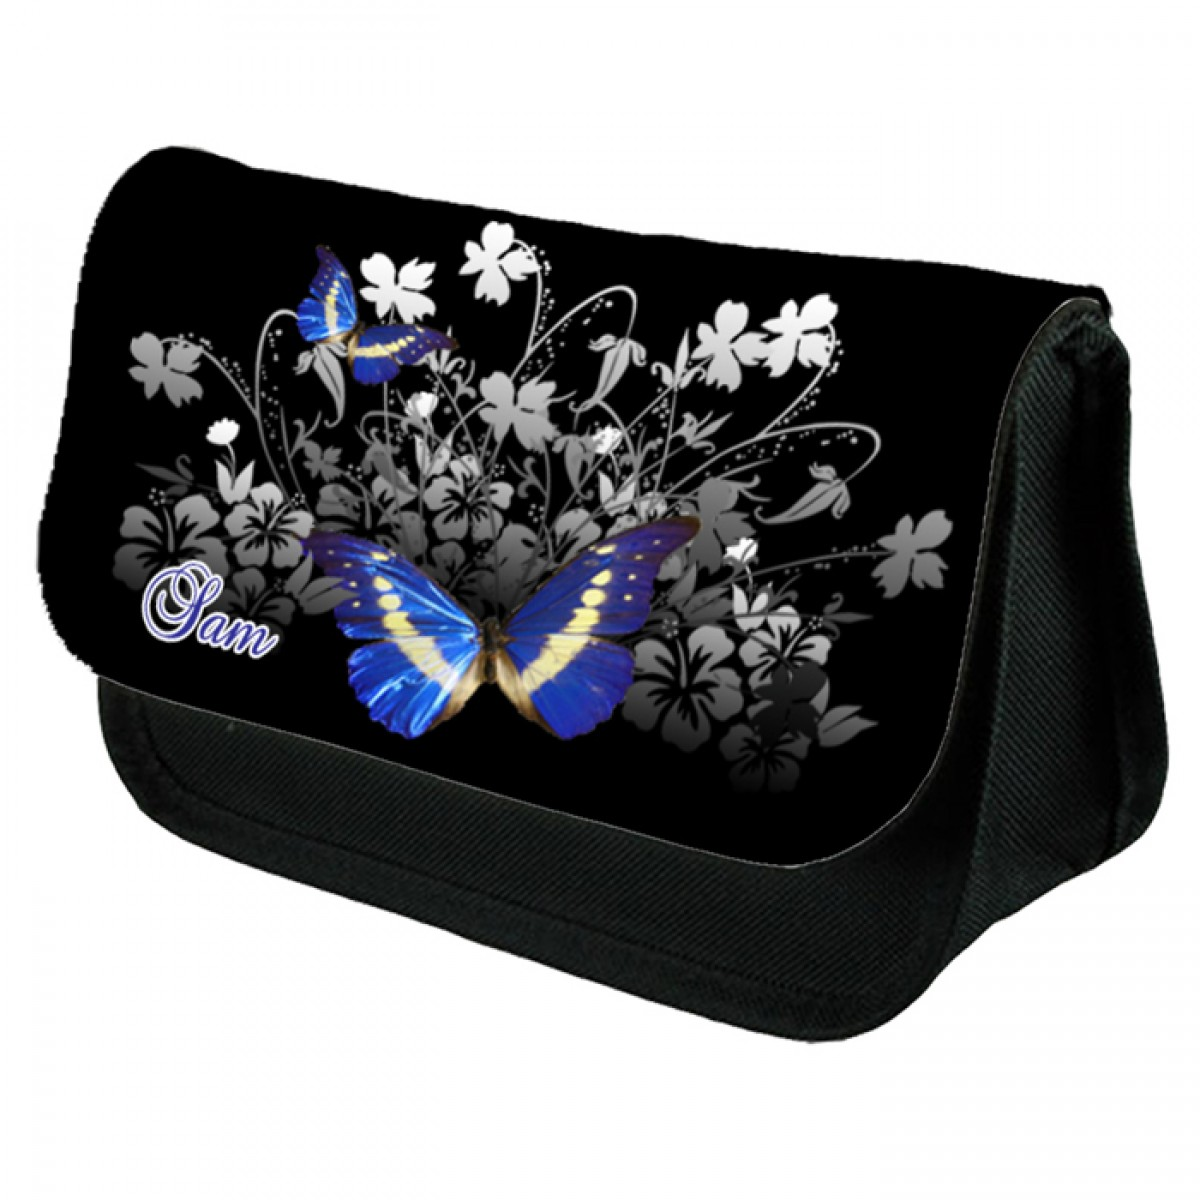 Beautiful Butterfly Personalised Pencil Case Make Up Bag Birthday Christmas Gift Idea